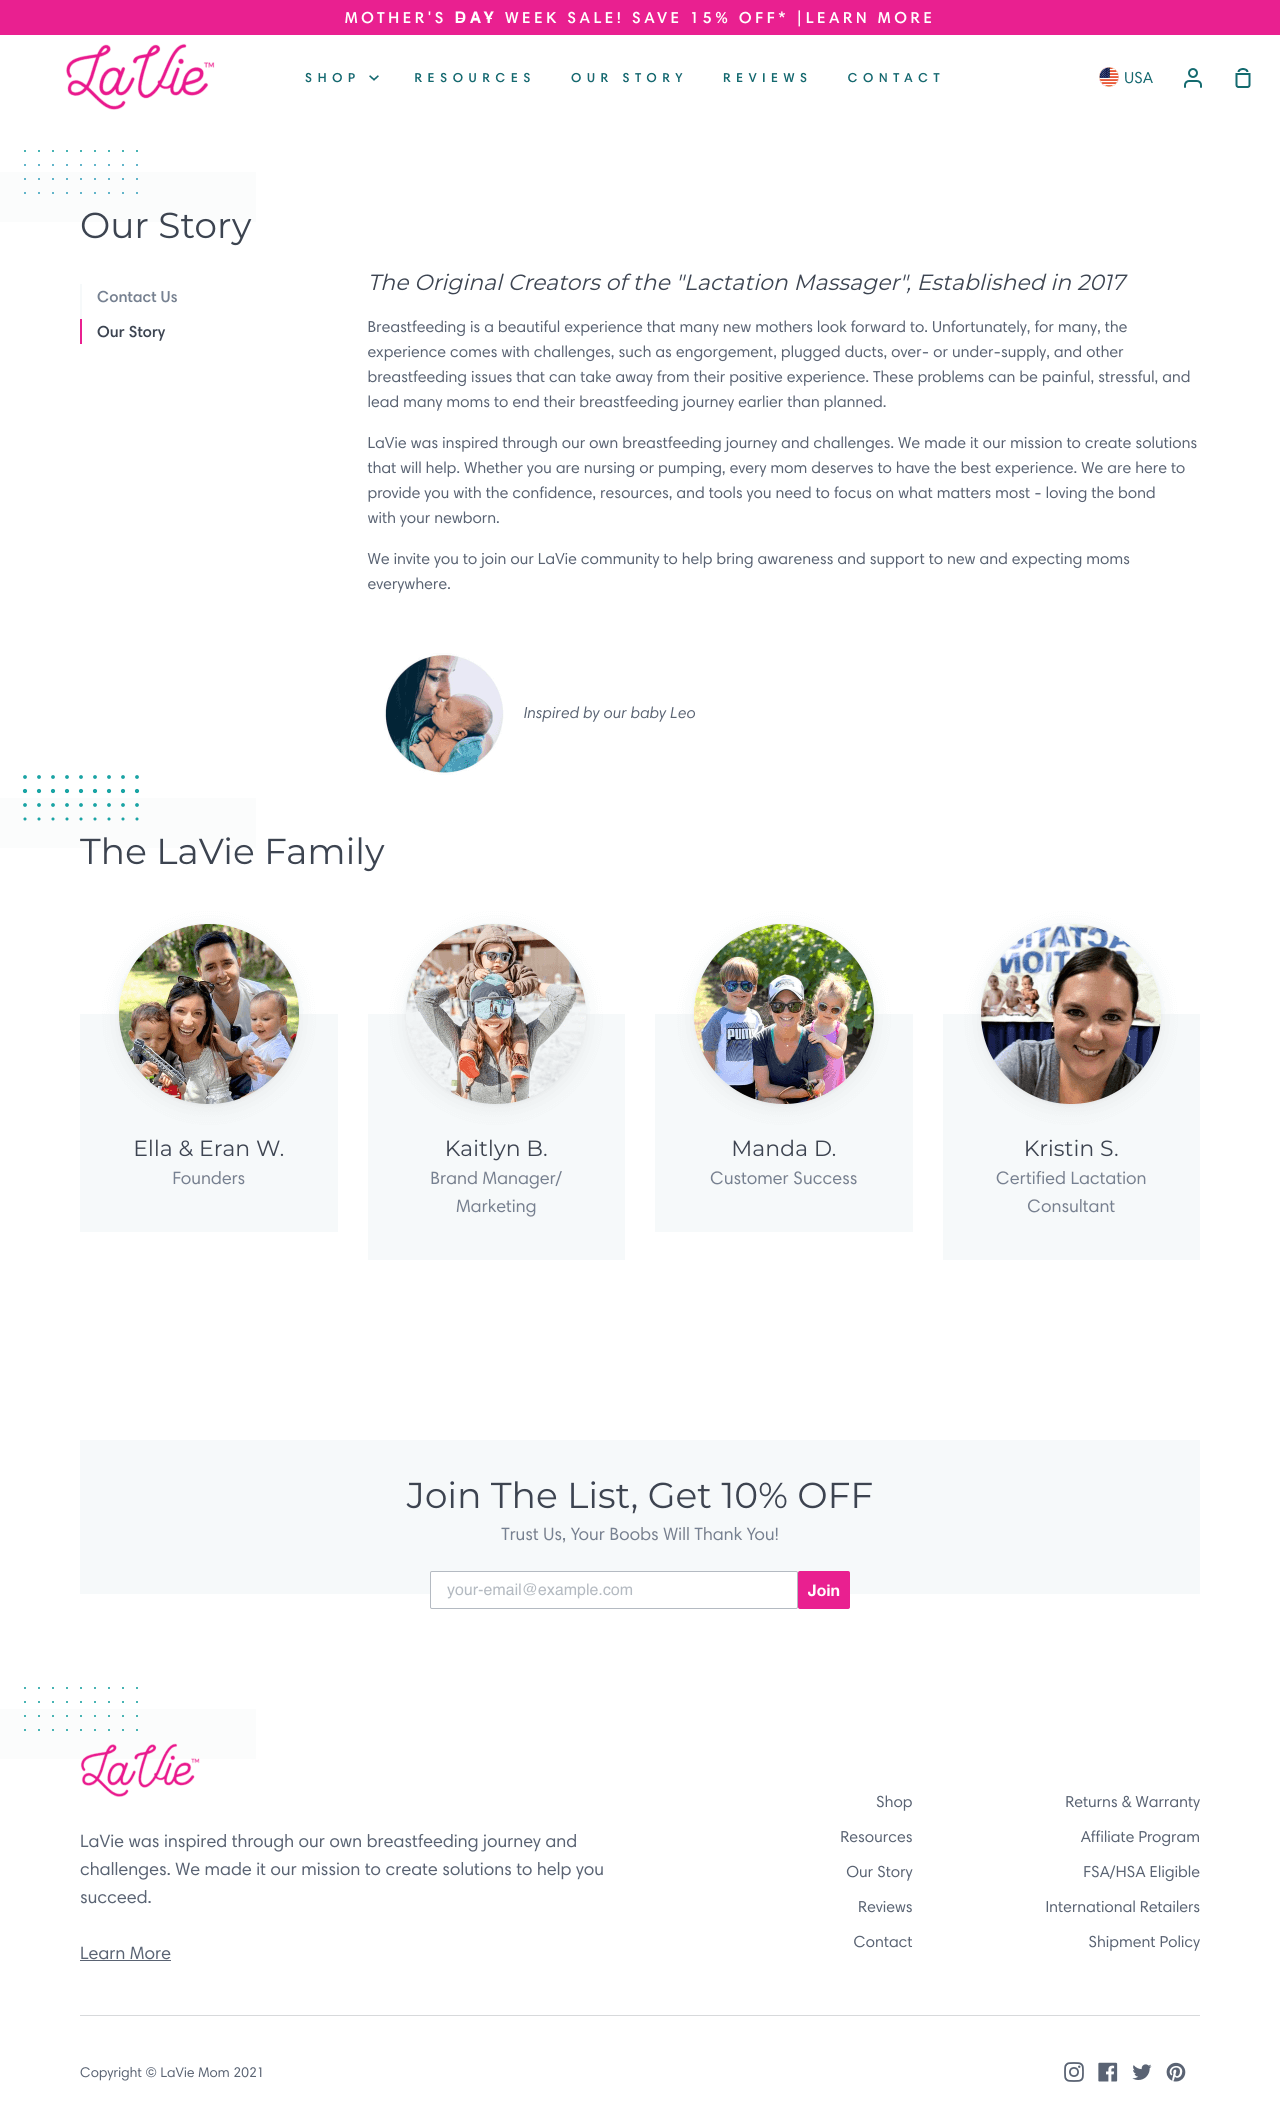 LaVie introduces an issue their customers face on the Shopify About Us page